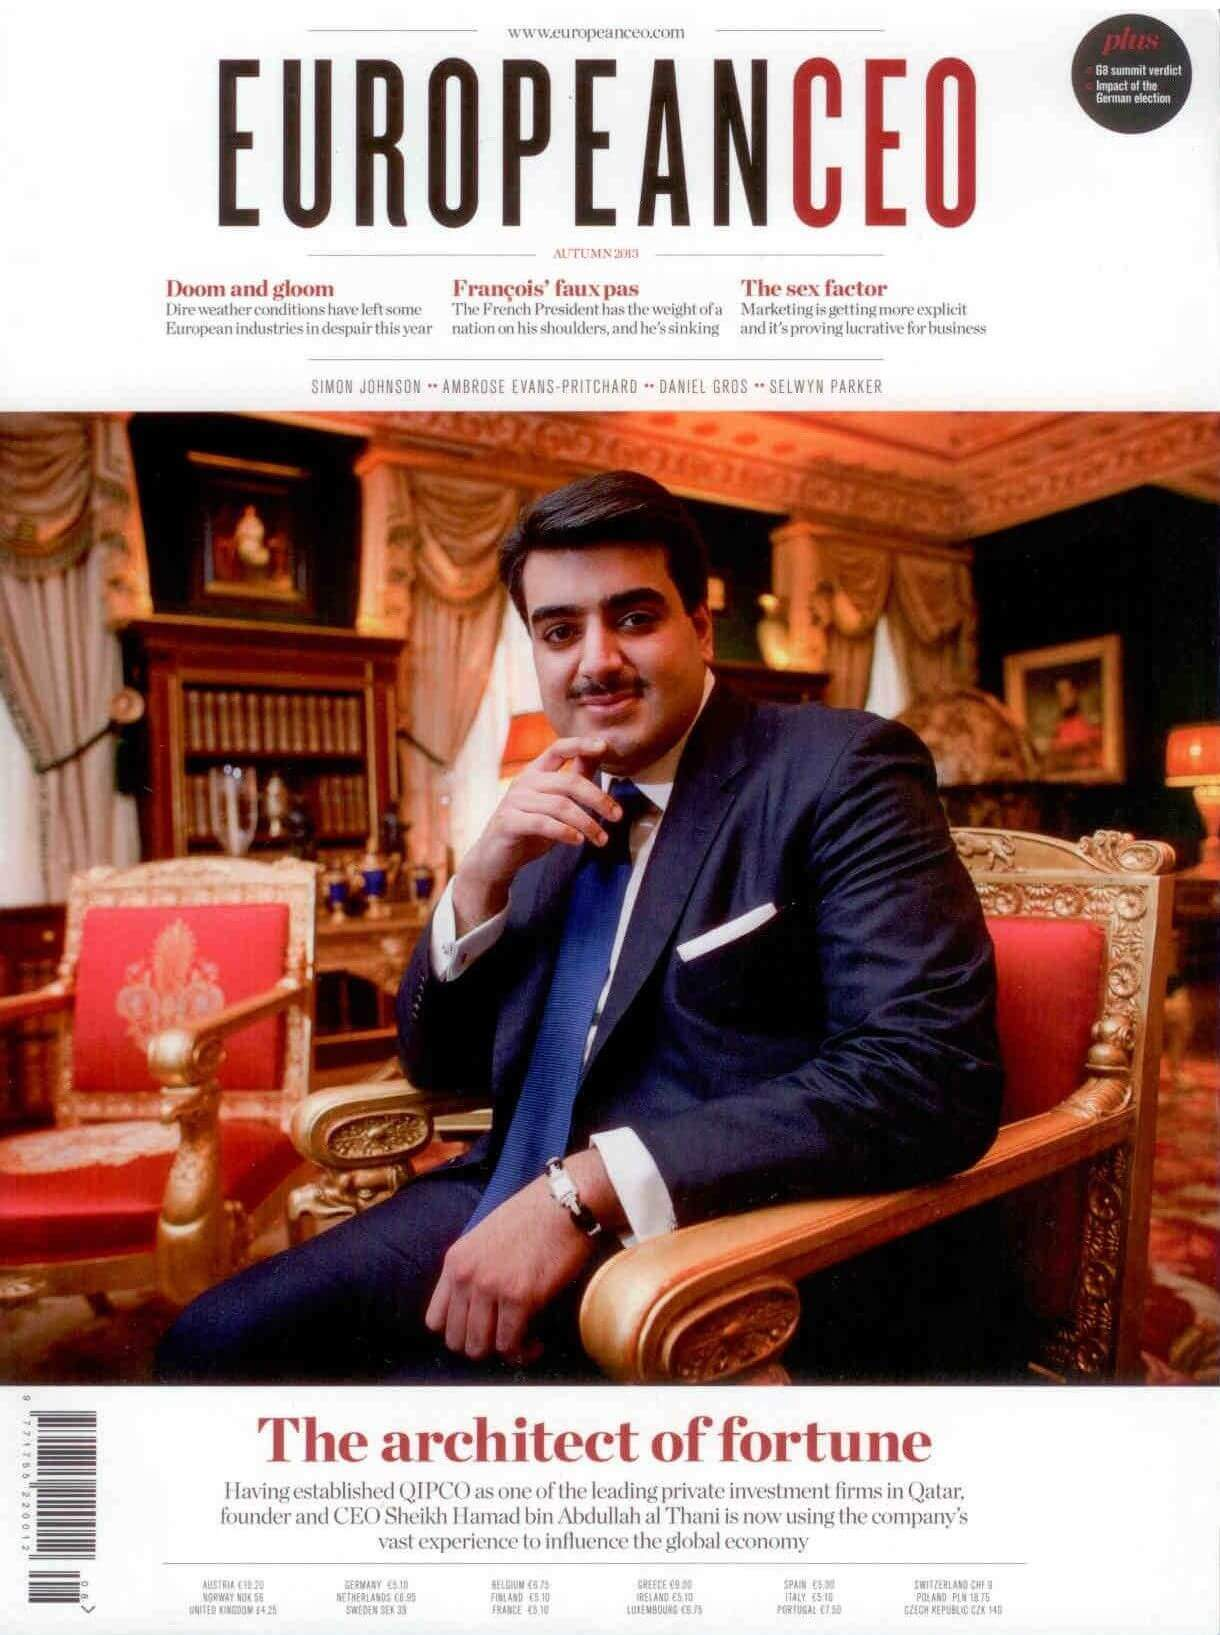 Revista European CEO, otoño de 2013